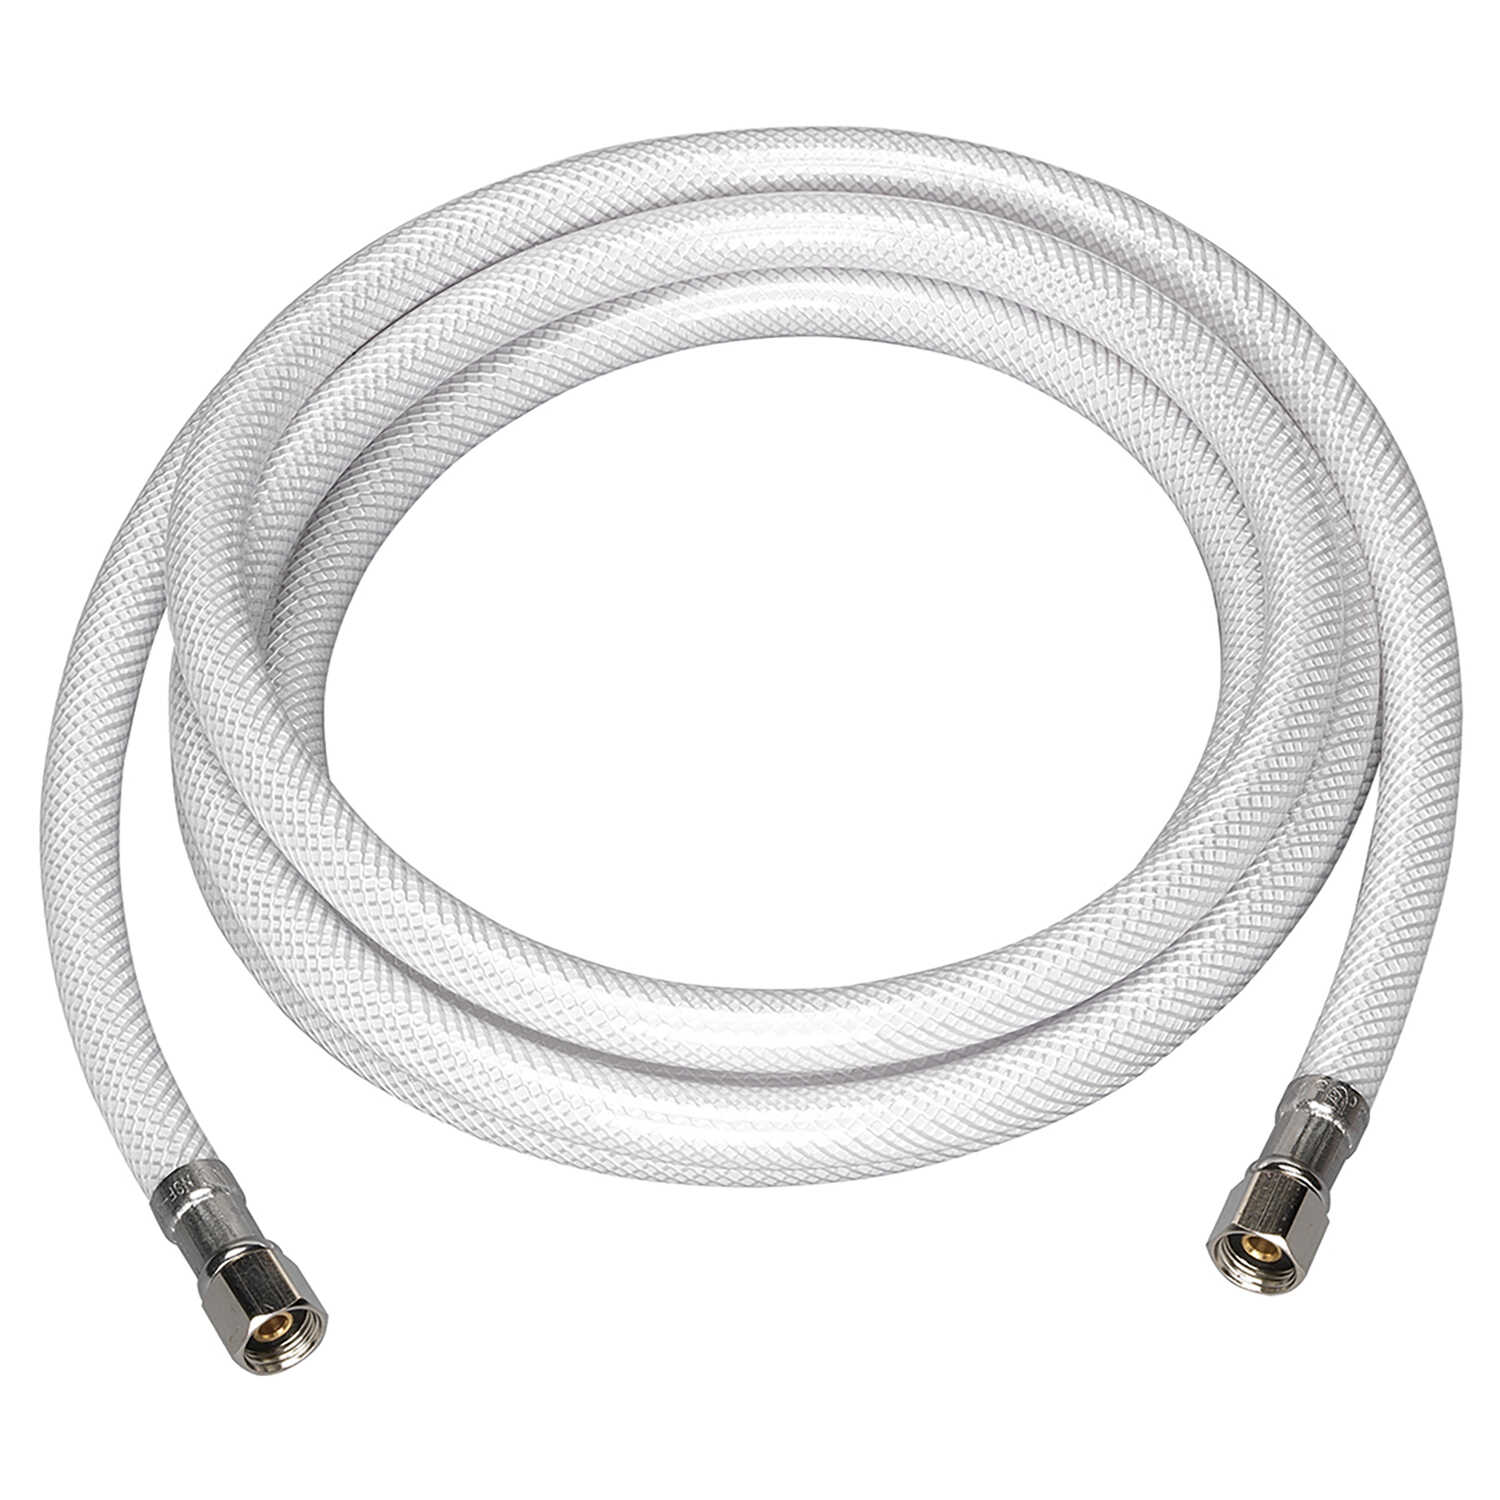 Ace Hardware  1/4 in. Compression   x 1/4 in. Dia. Compression  240 in. PVC  Supply Line